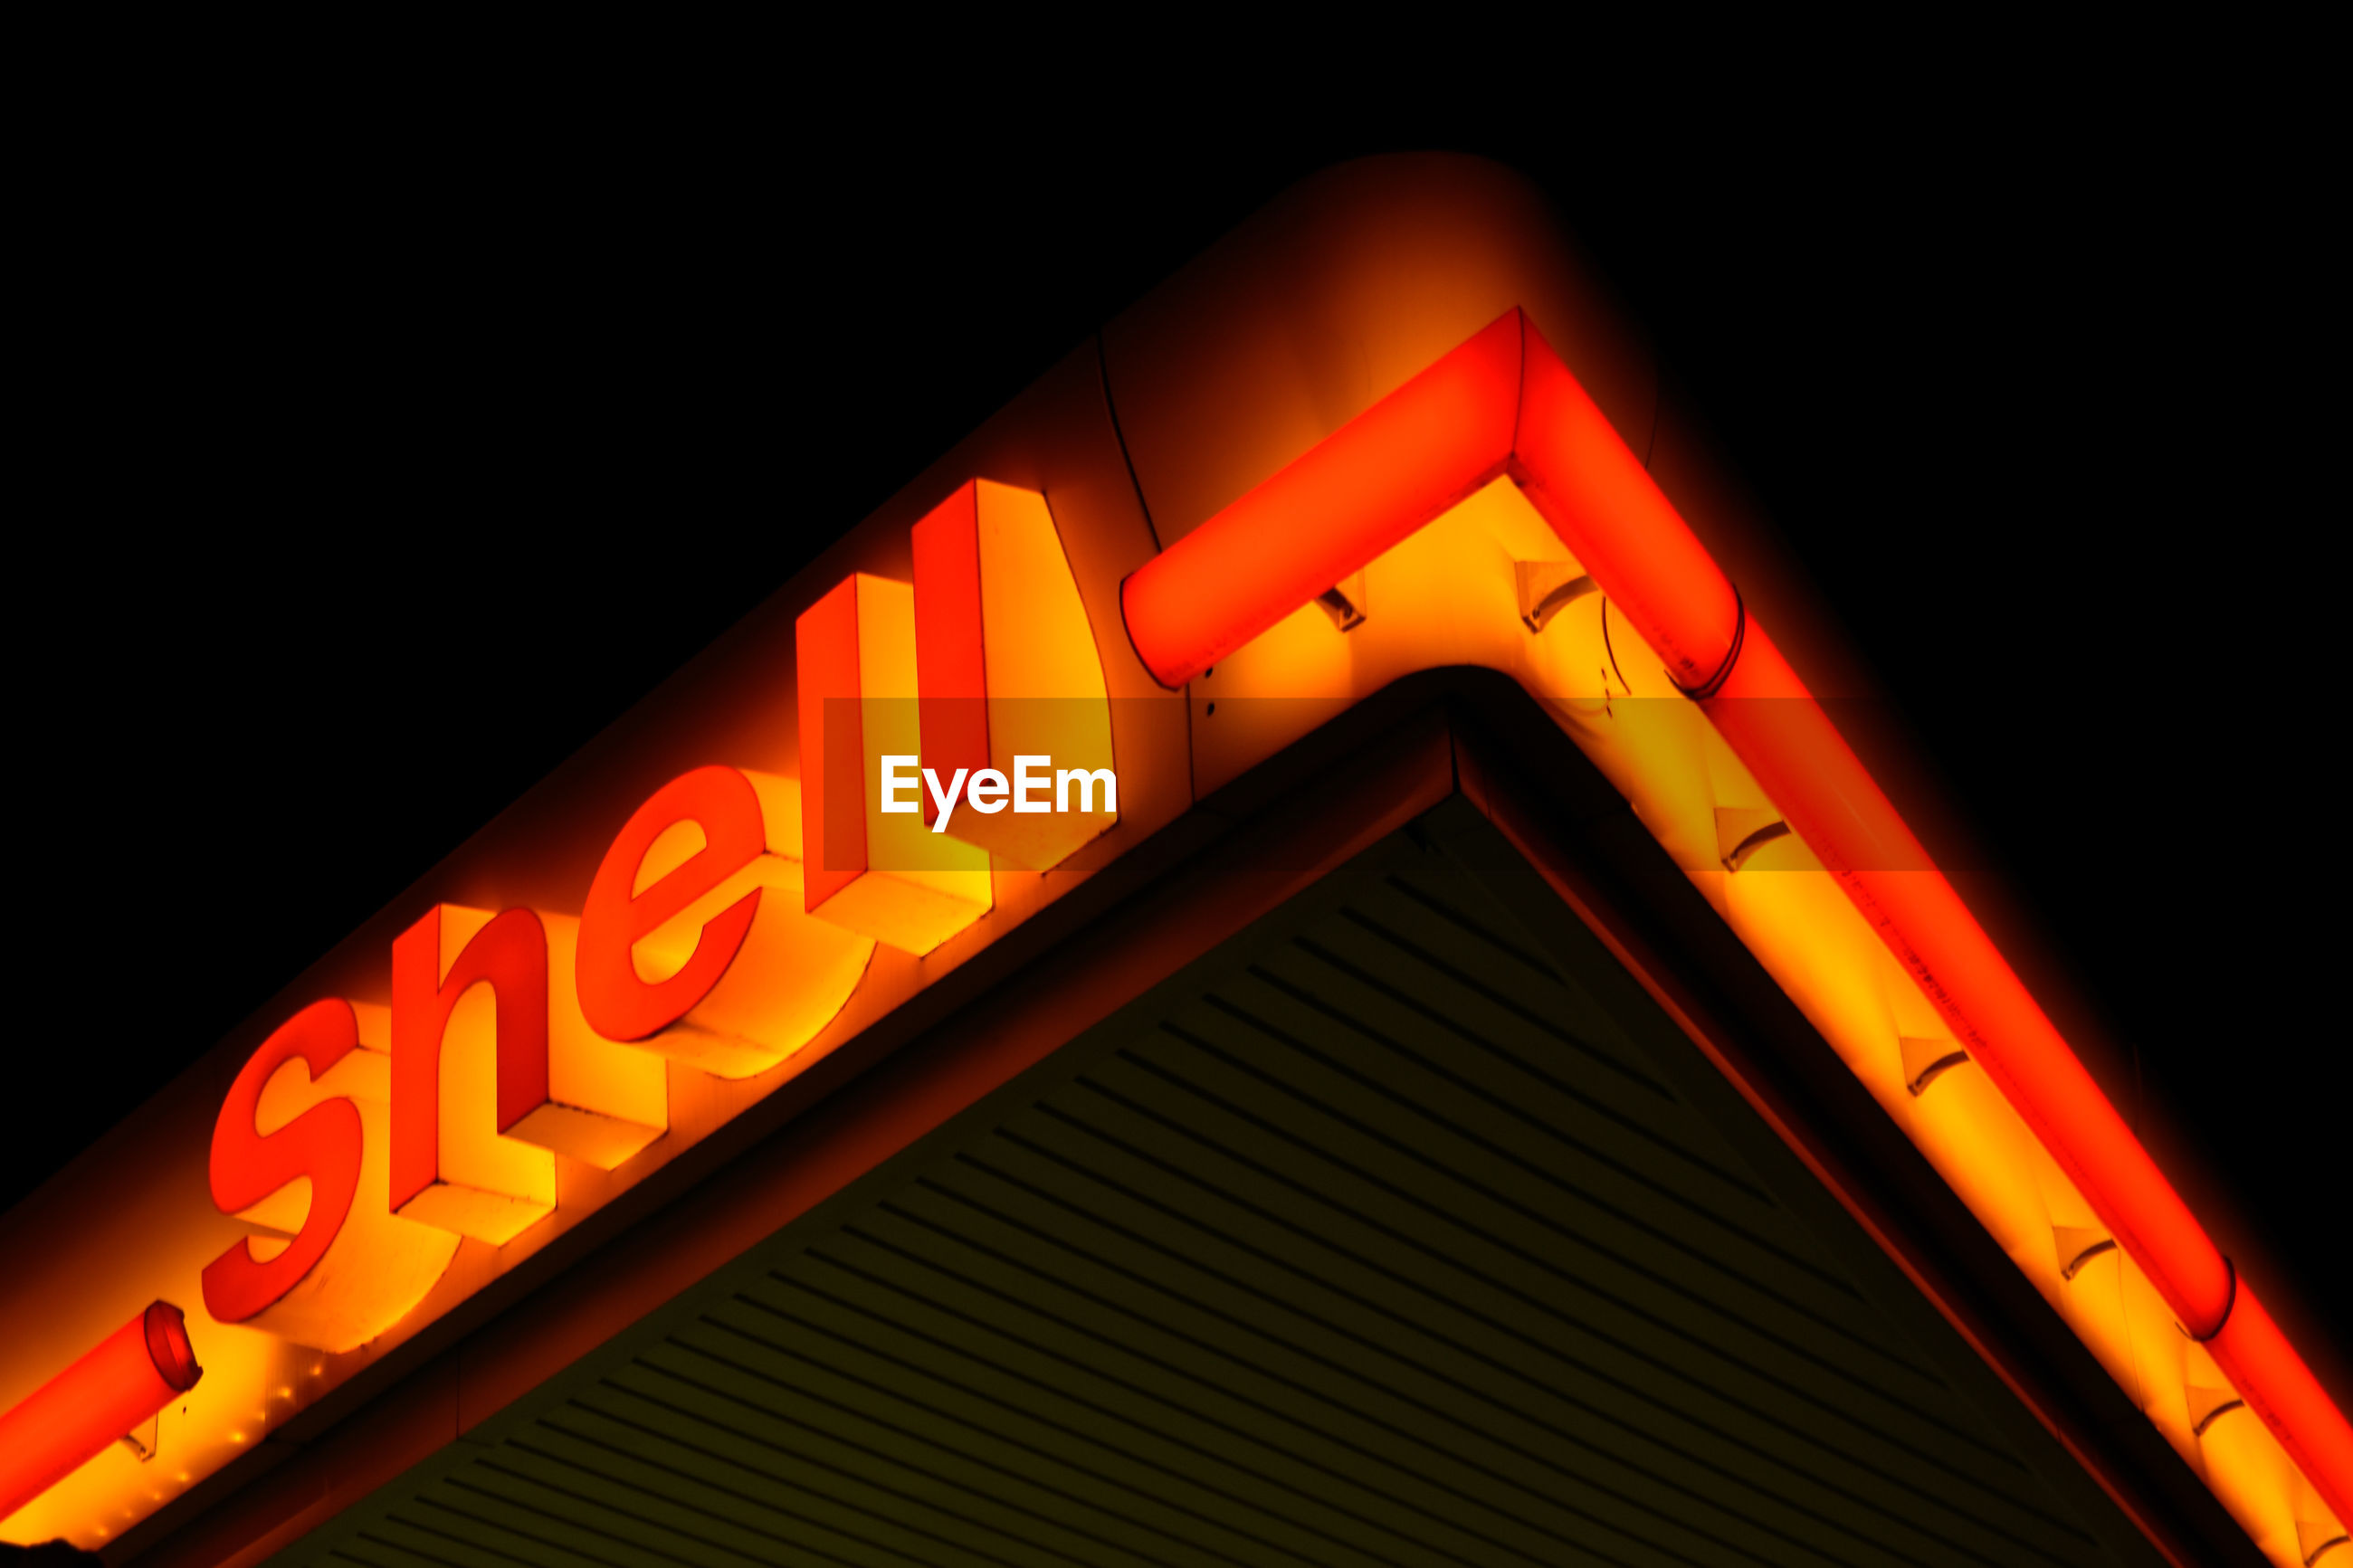 illuminated, text, communication, night, western script, sign, neon, no people, lighting equipment, glowing, orange color, low angle view, close-up, red, arts culture and entertainment, information, capital letter, information sign, indoors, architecture, black background